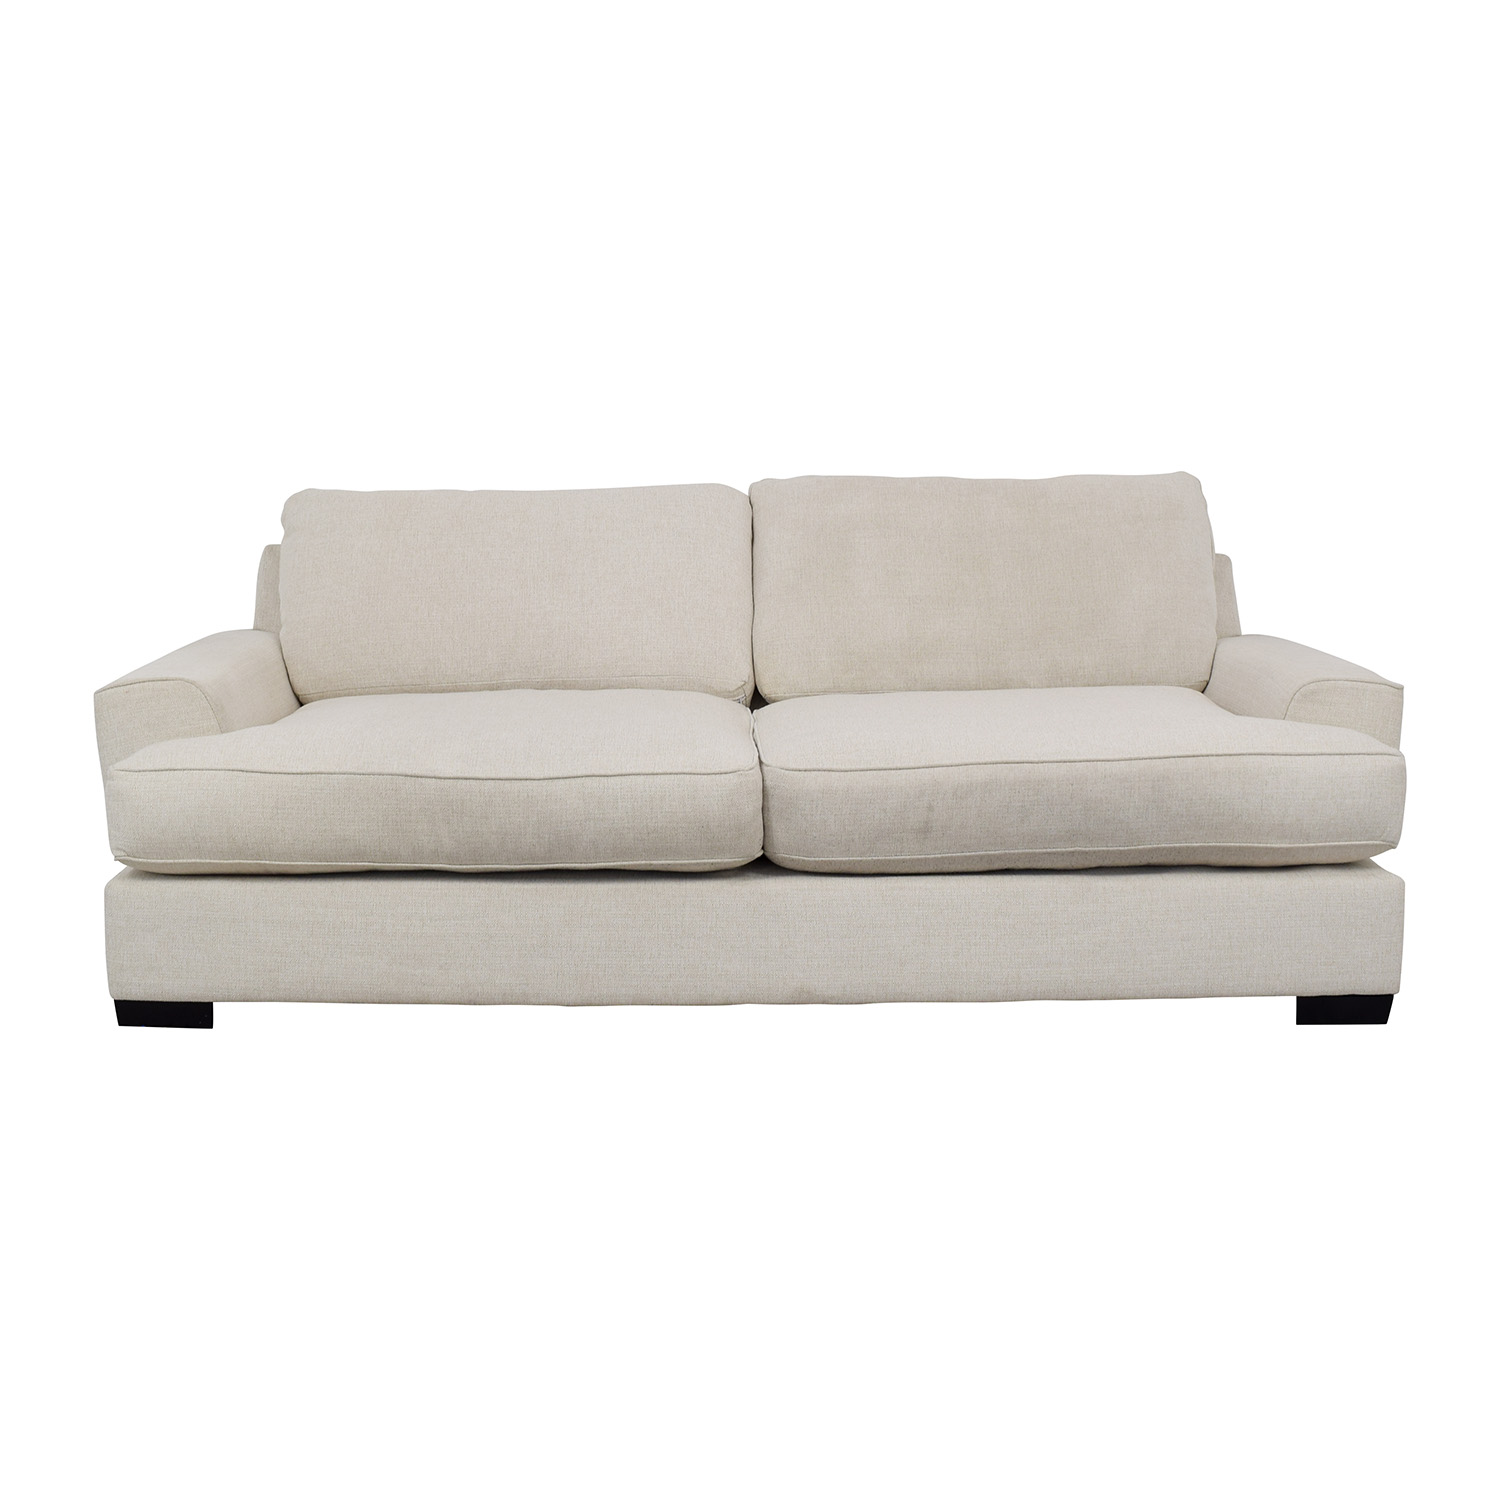 Macy's Ainsley Fabric Sofa / Classic Sofas